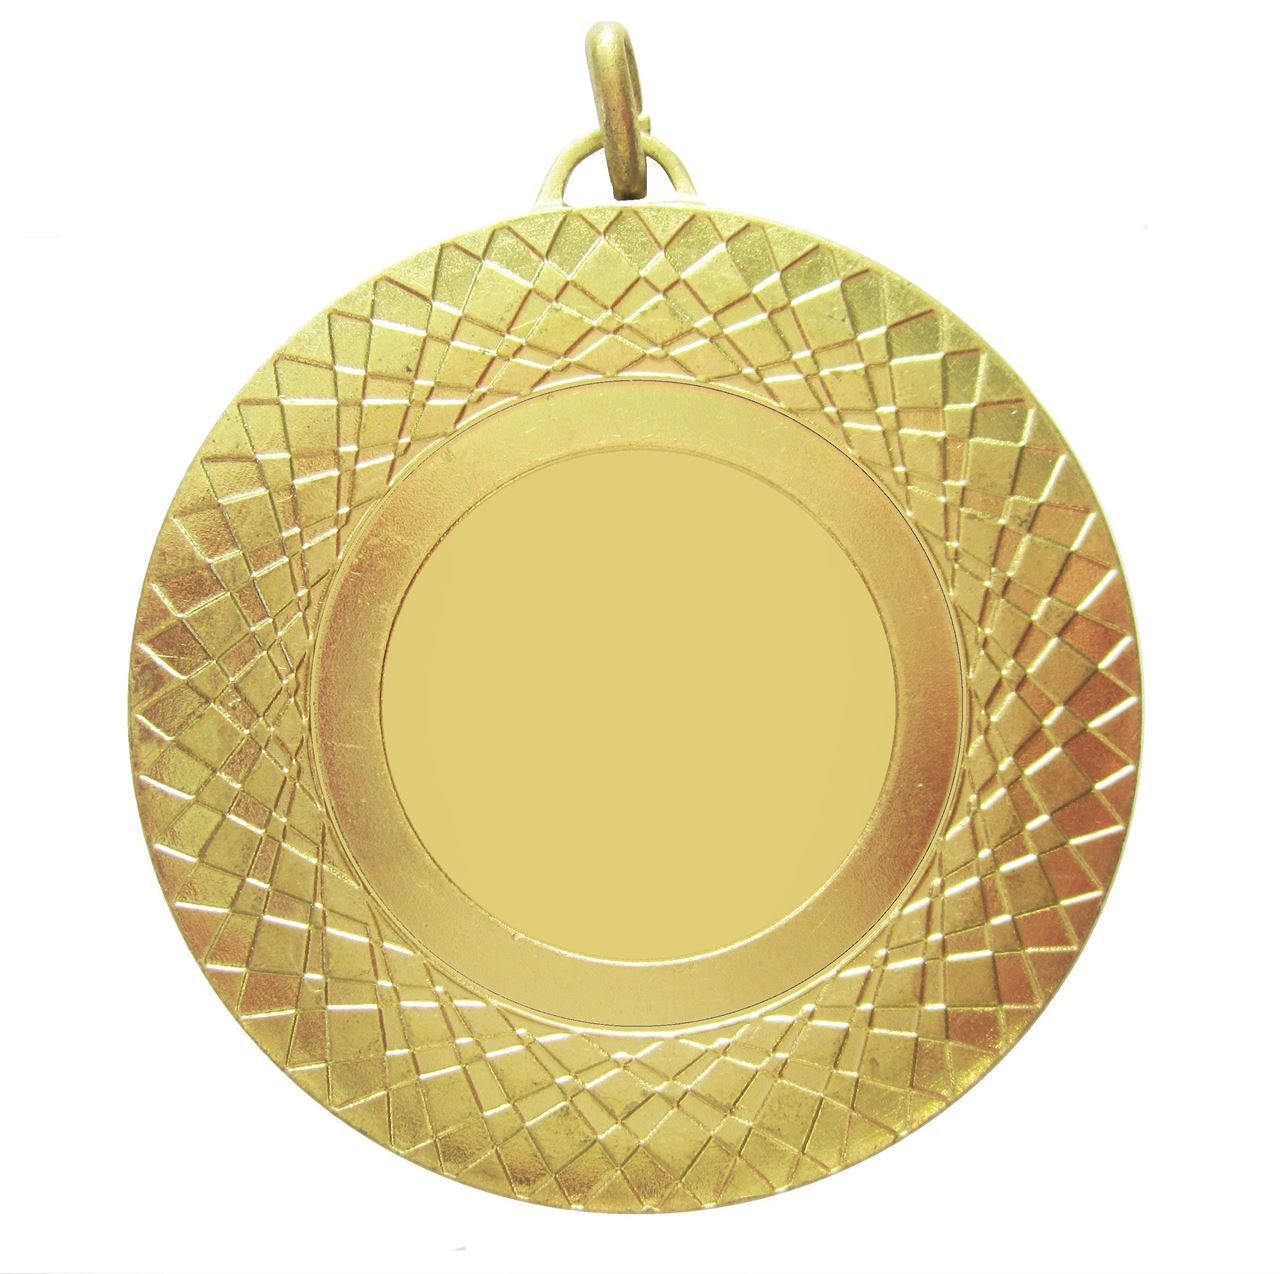 Gold Assertion Bright Finish Medal (size: 50mm) - 5807